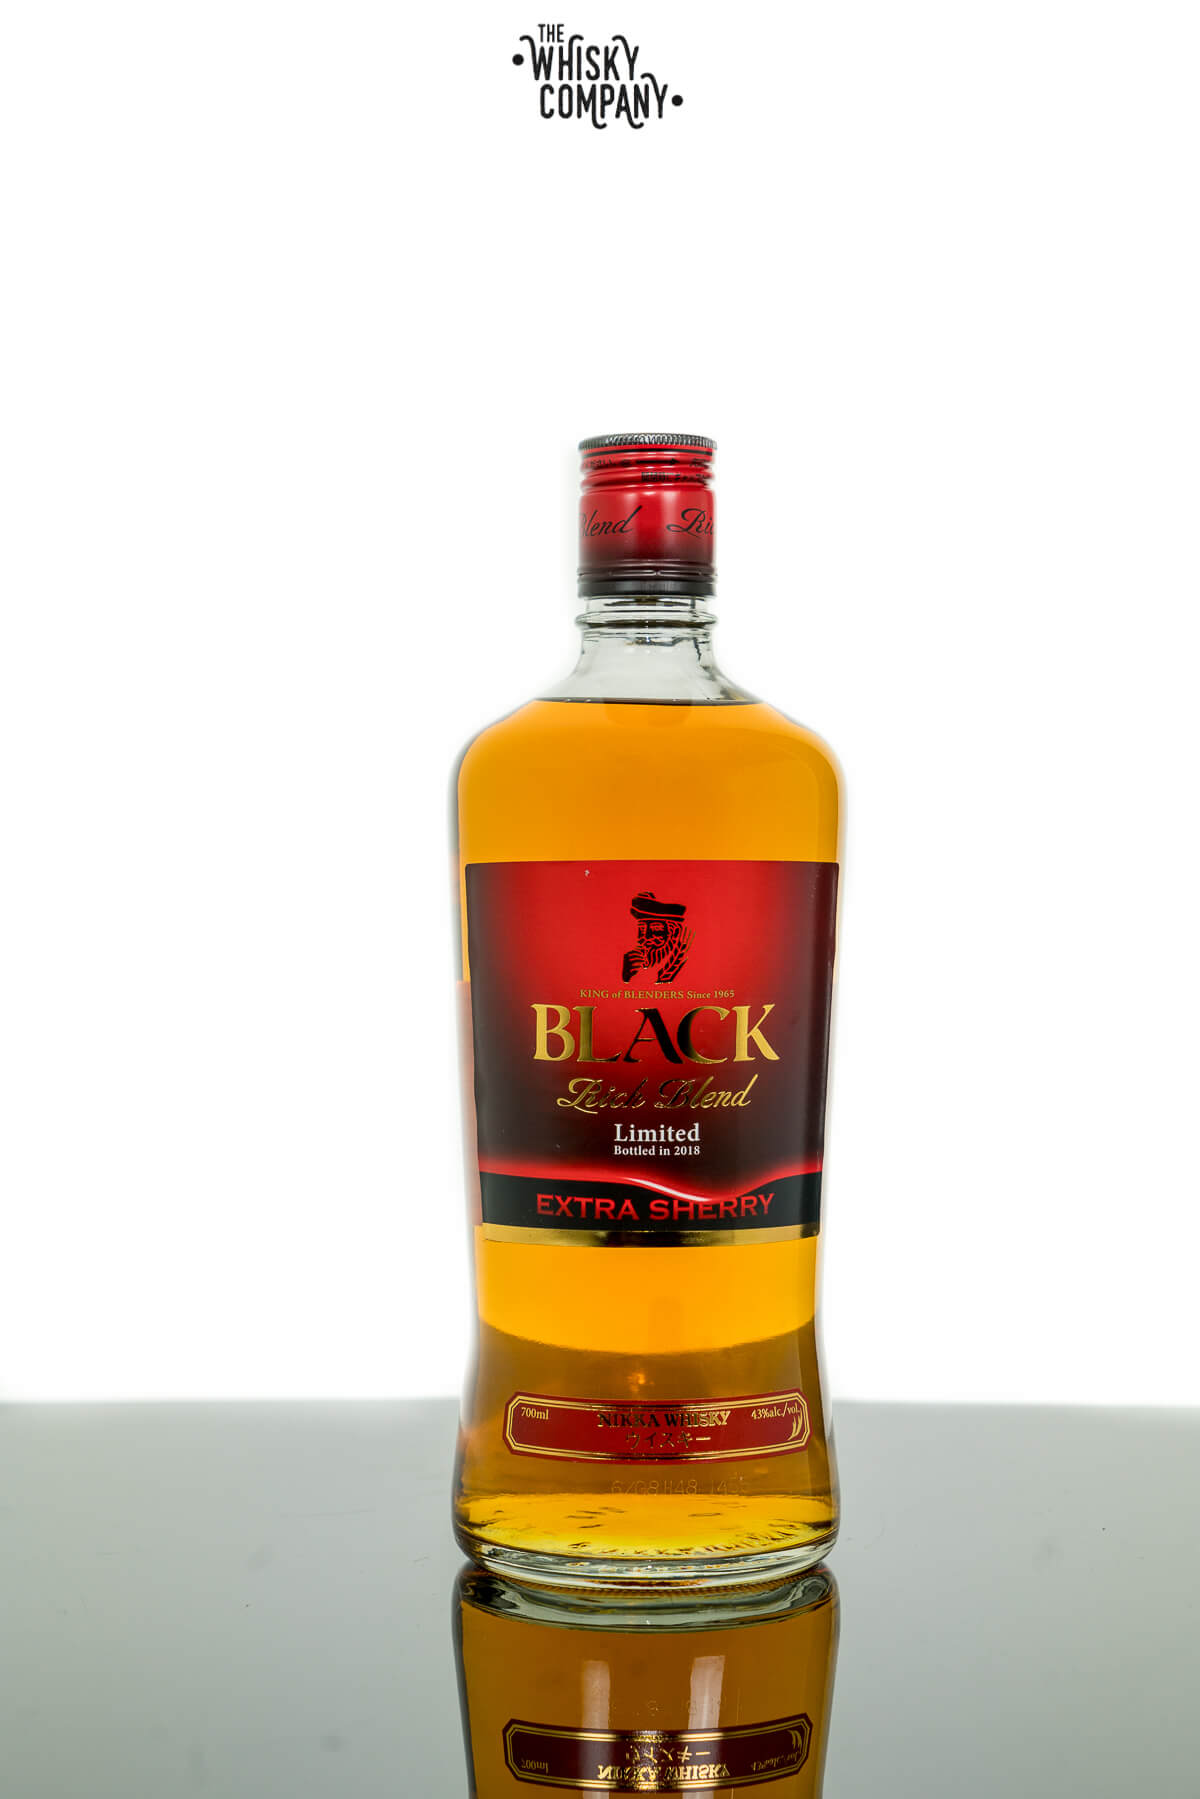 Nikka Black Rich Blend Extra Sherry 2018 Japanese Whisky (700ml)